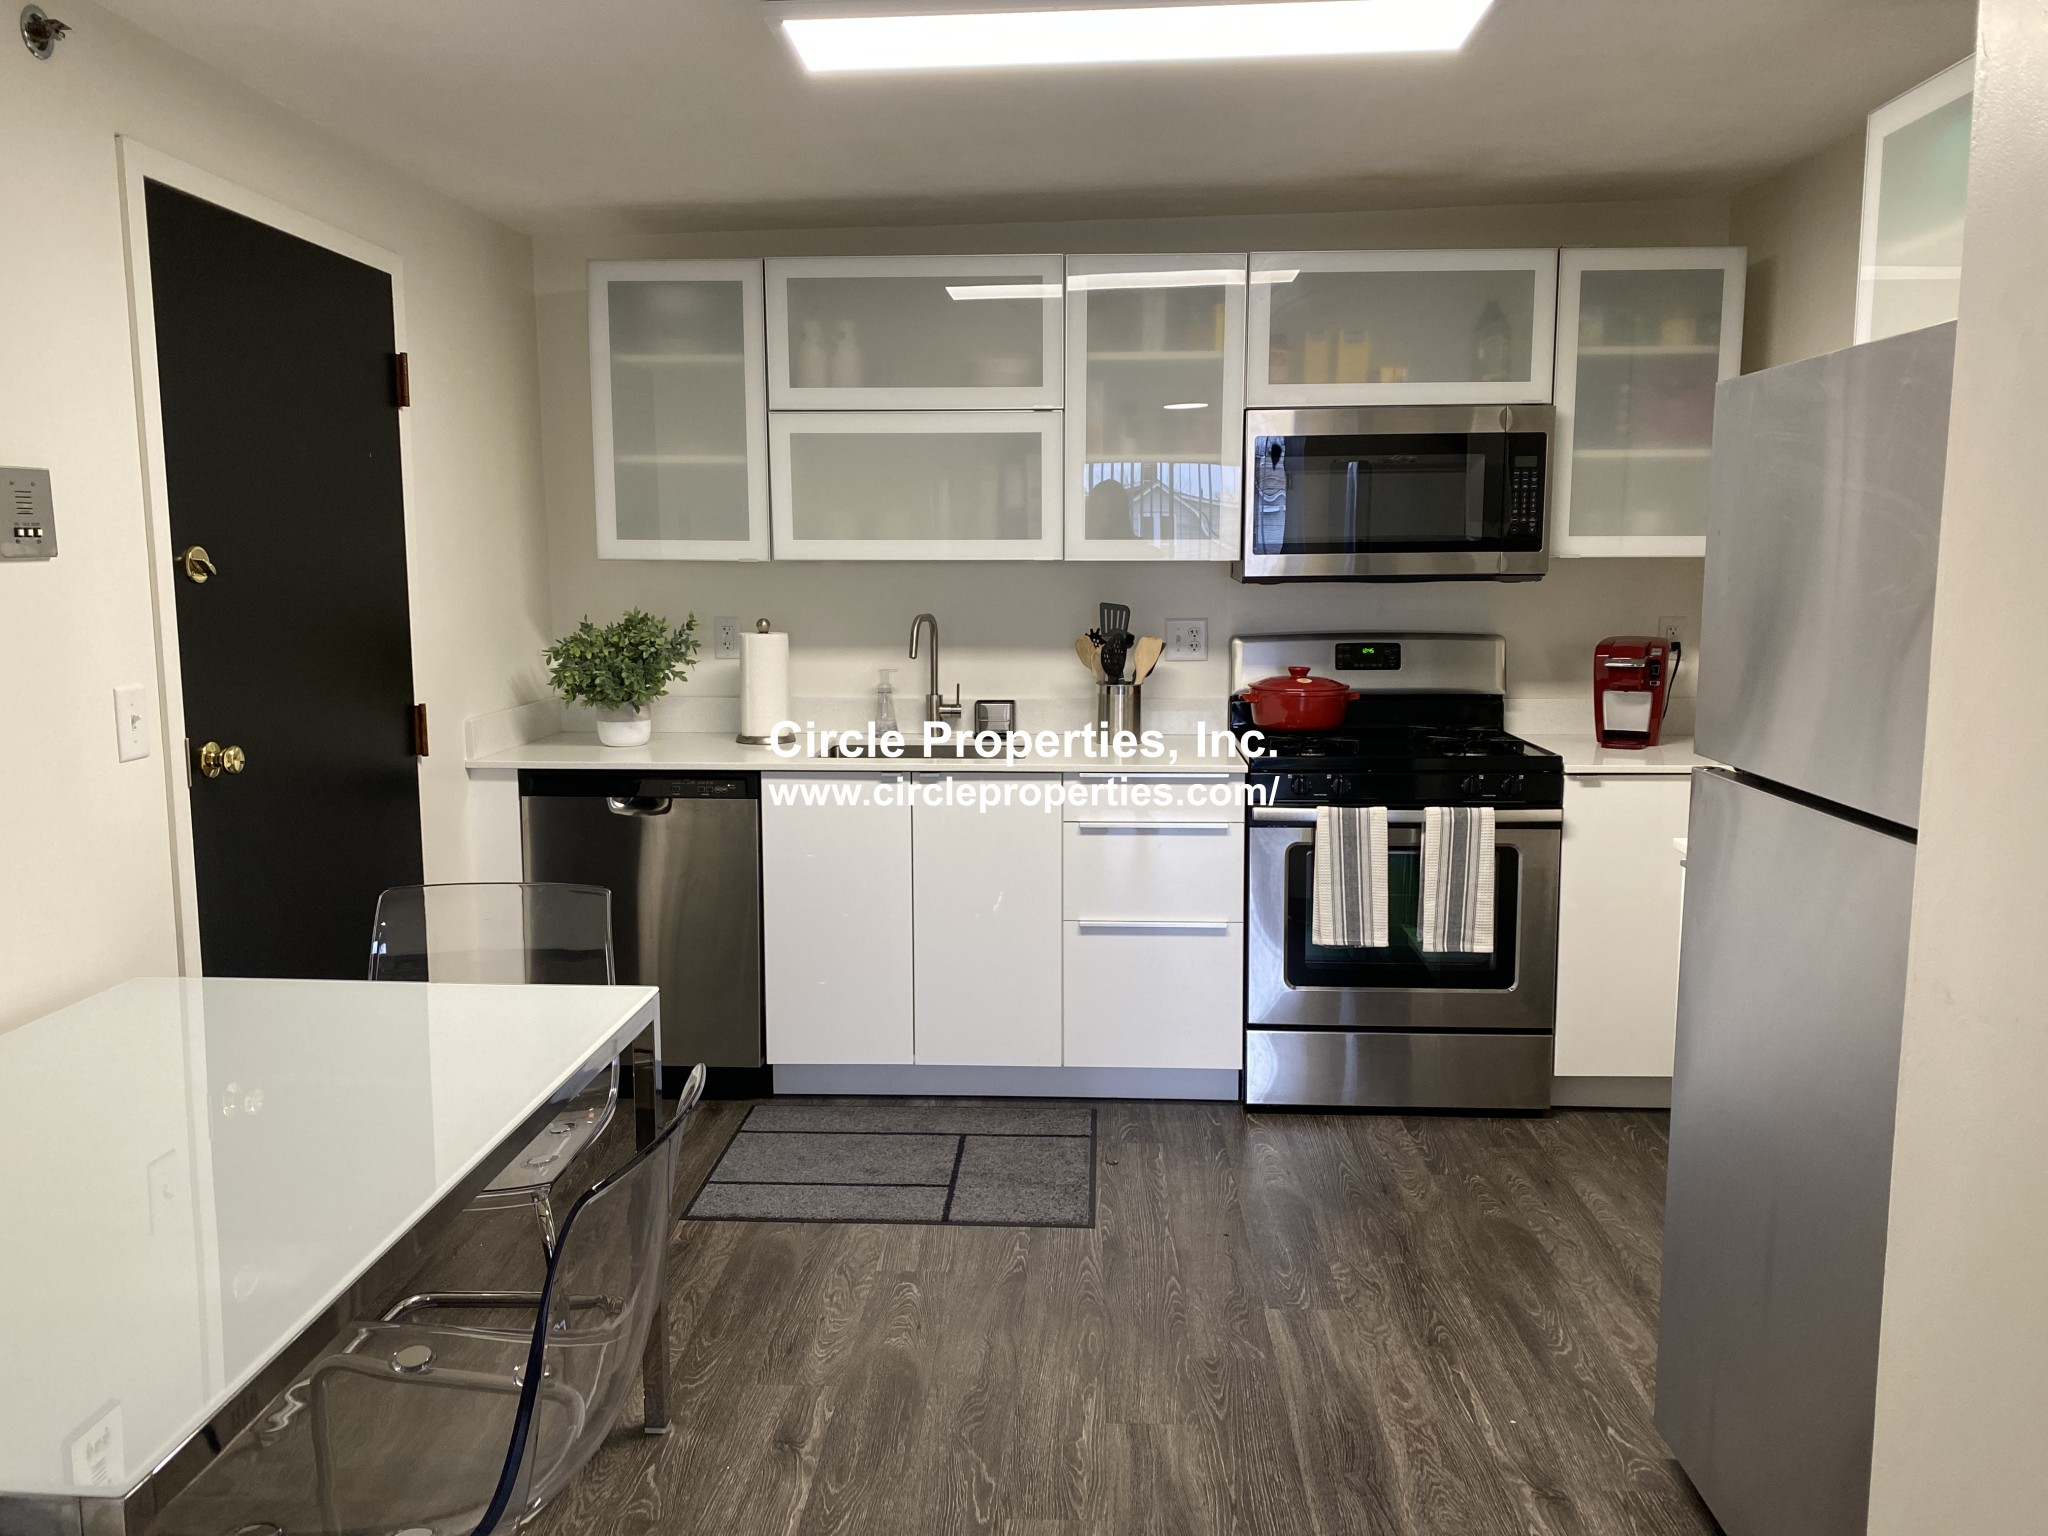 2 Bd on Darling St., Avail 09/01, 2019 Remodel